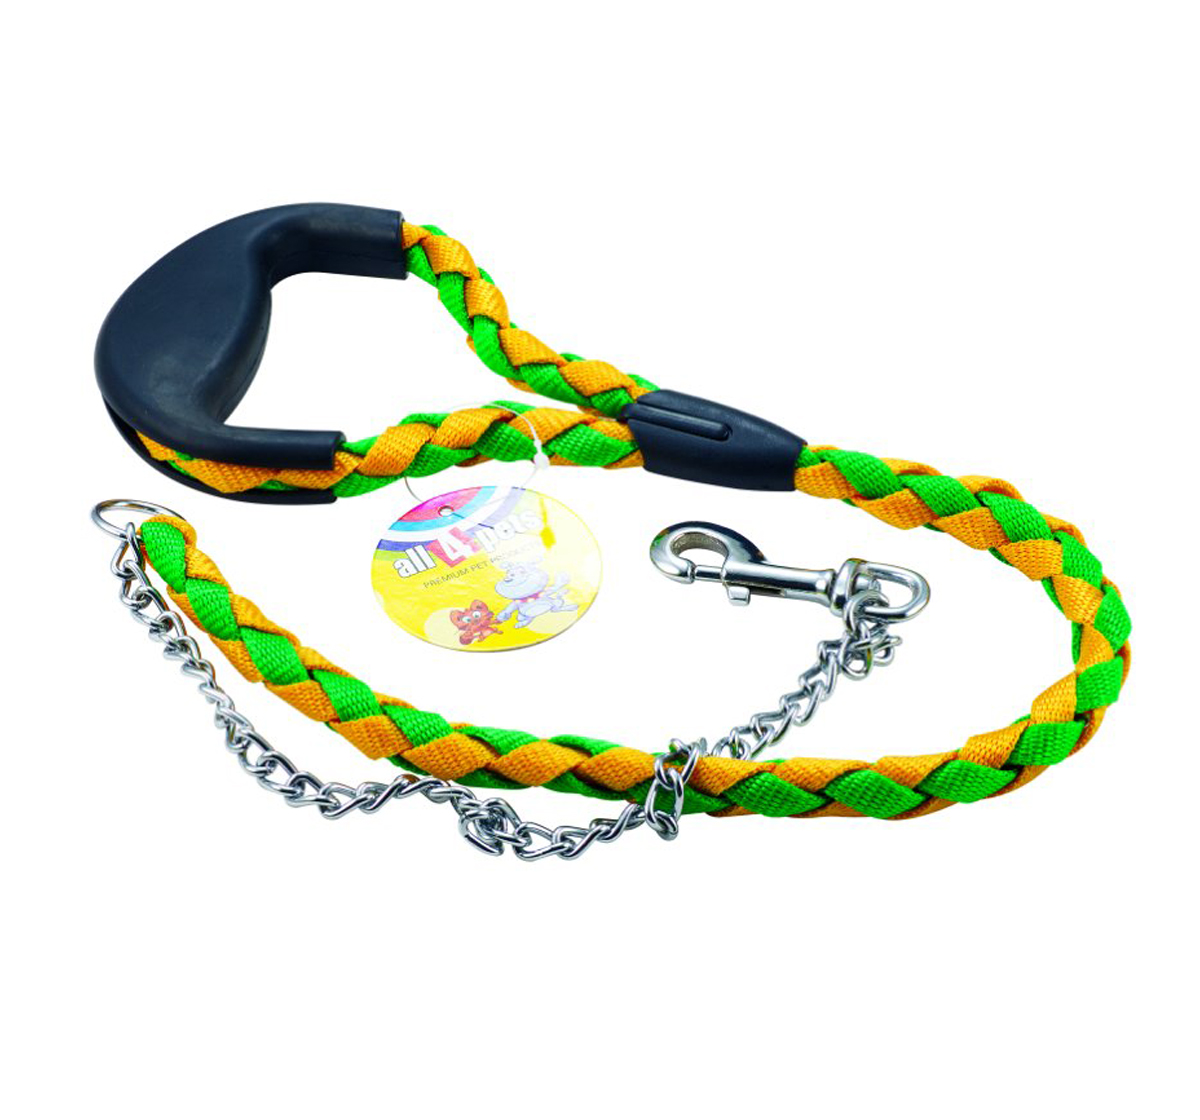 Dog Rope Leash With Chain Nylon | DogSpot - Online Pet ...